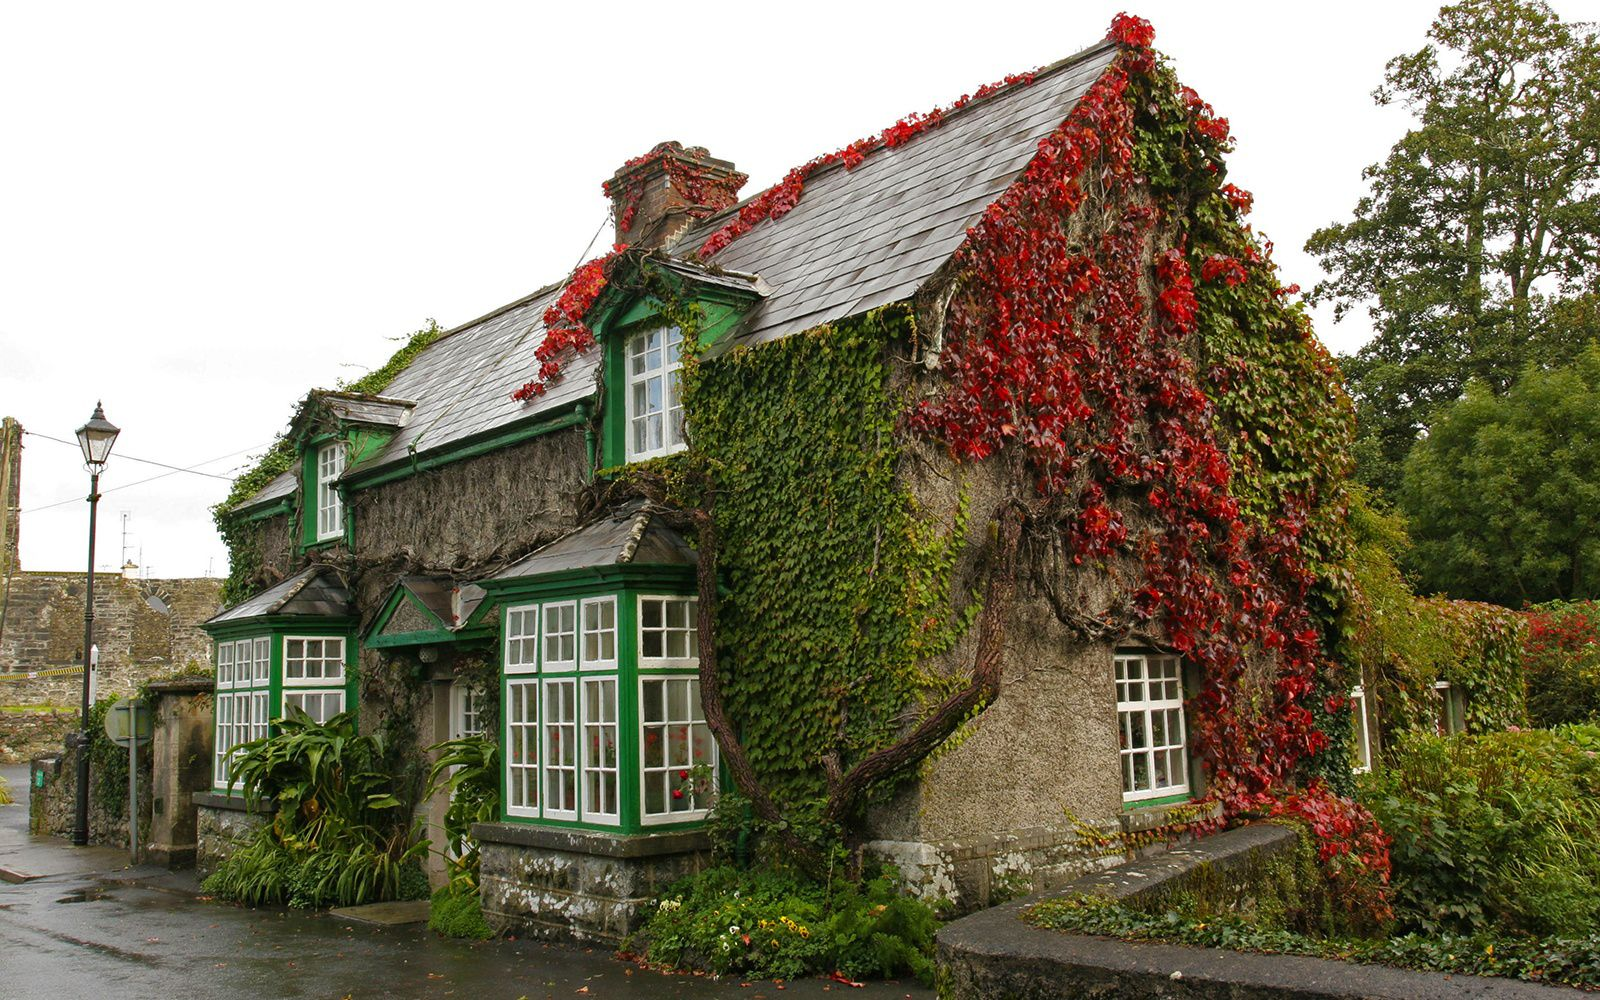 22 Postcard-Perfect European Villages Straight Out of a Fairytale - Cong, Ireland from InStyle.com